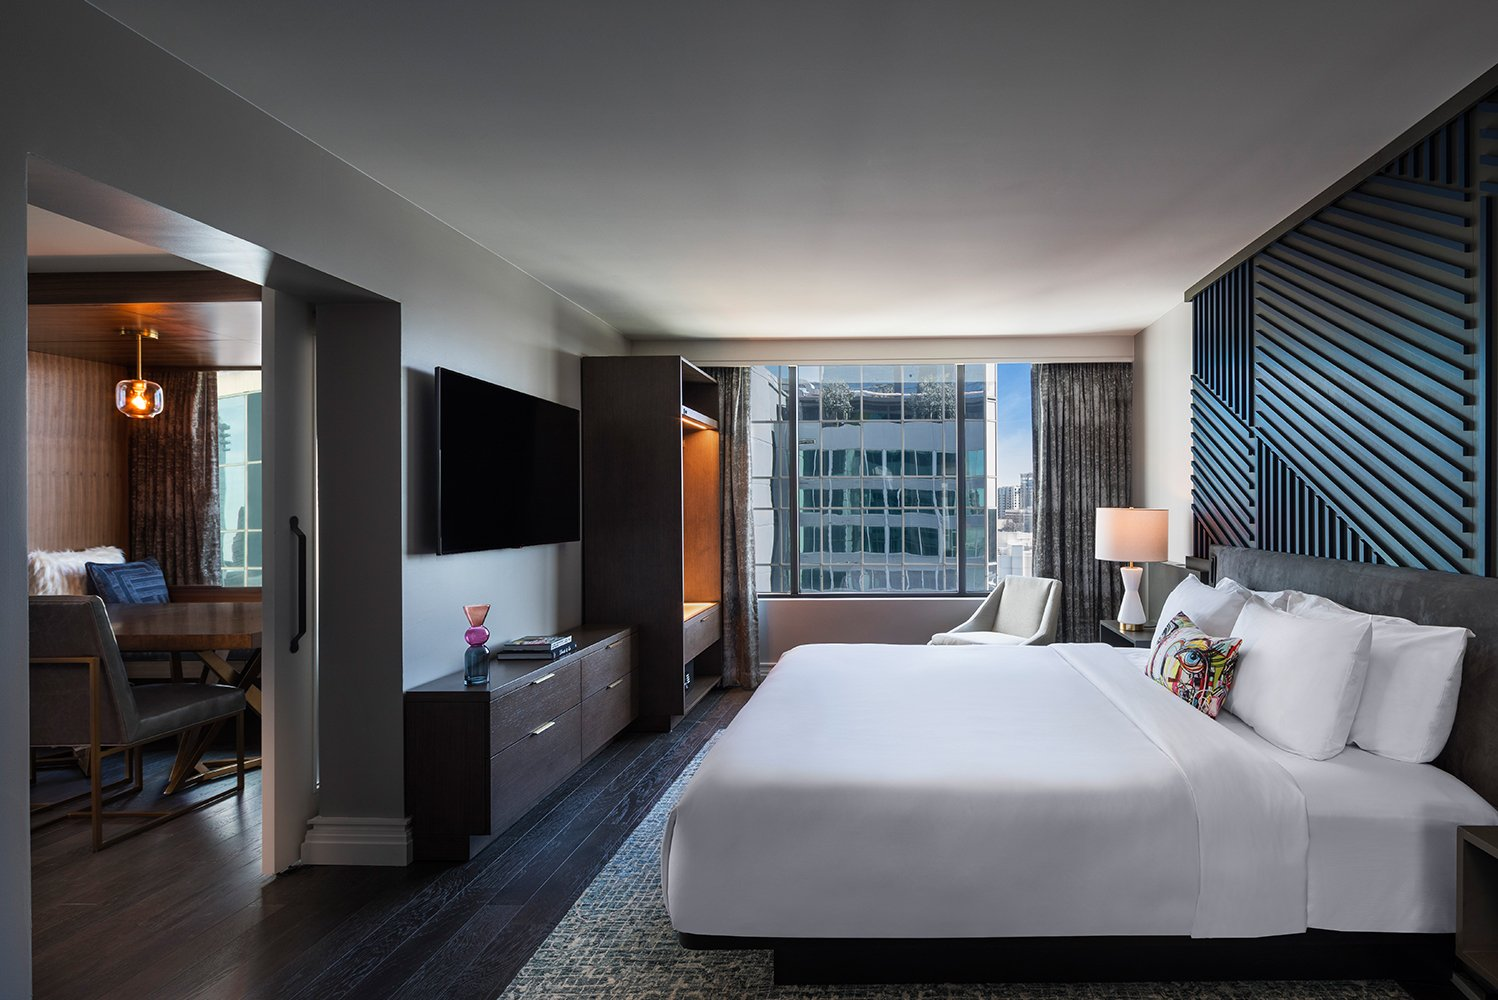 Woodbine Legacy Investments  completed a $20 million renovation on W Atlanta-Buckhead, a 12-story, 291-room hotel in Atlanta's Buckhead neighborhood.